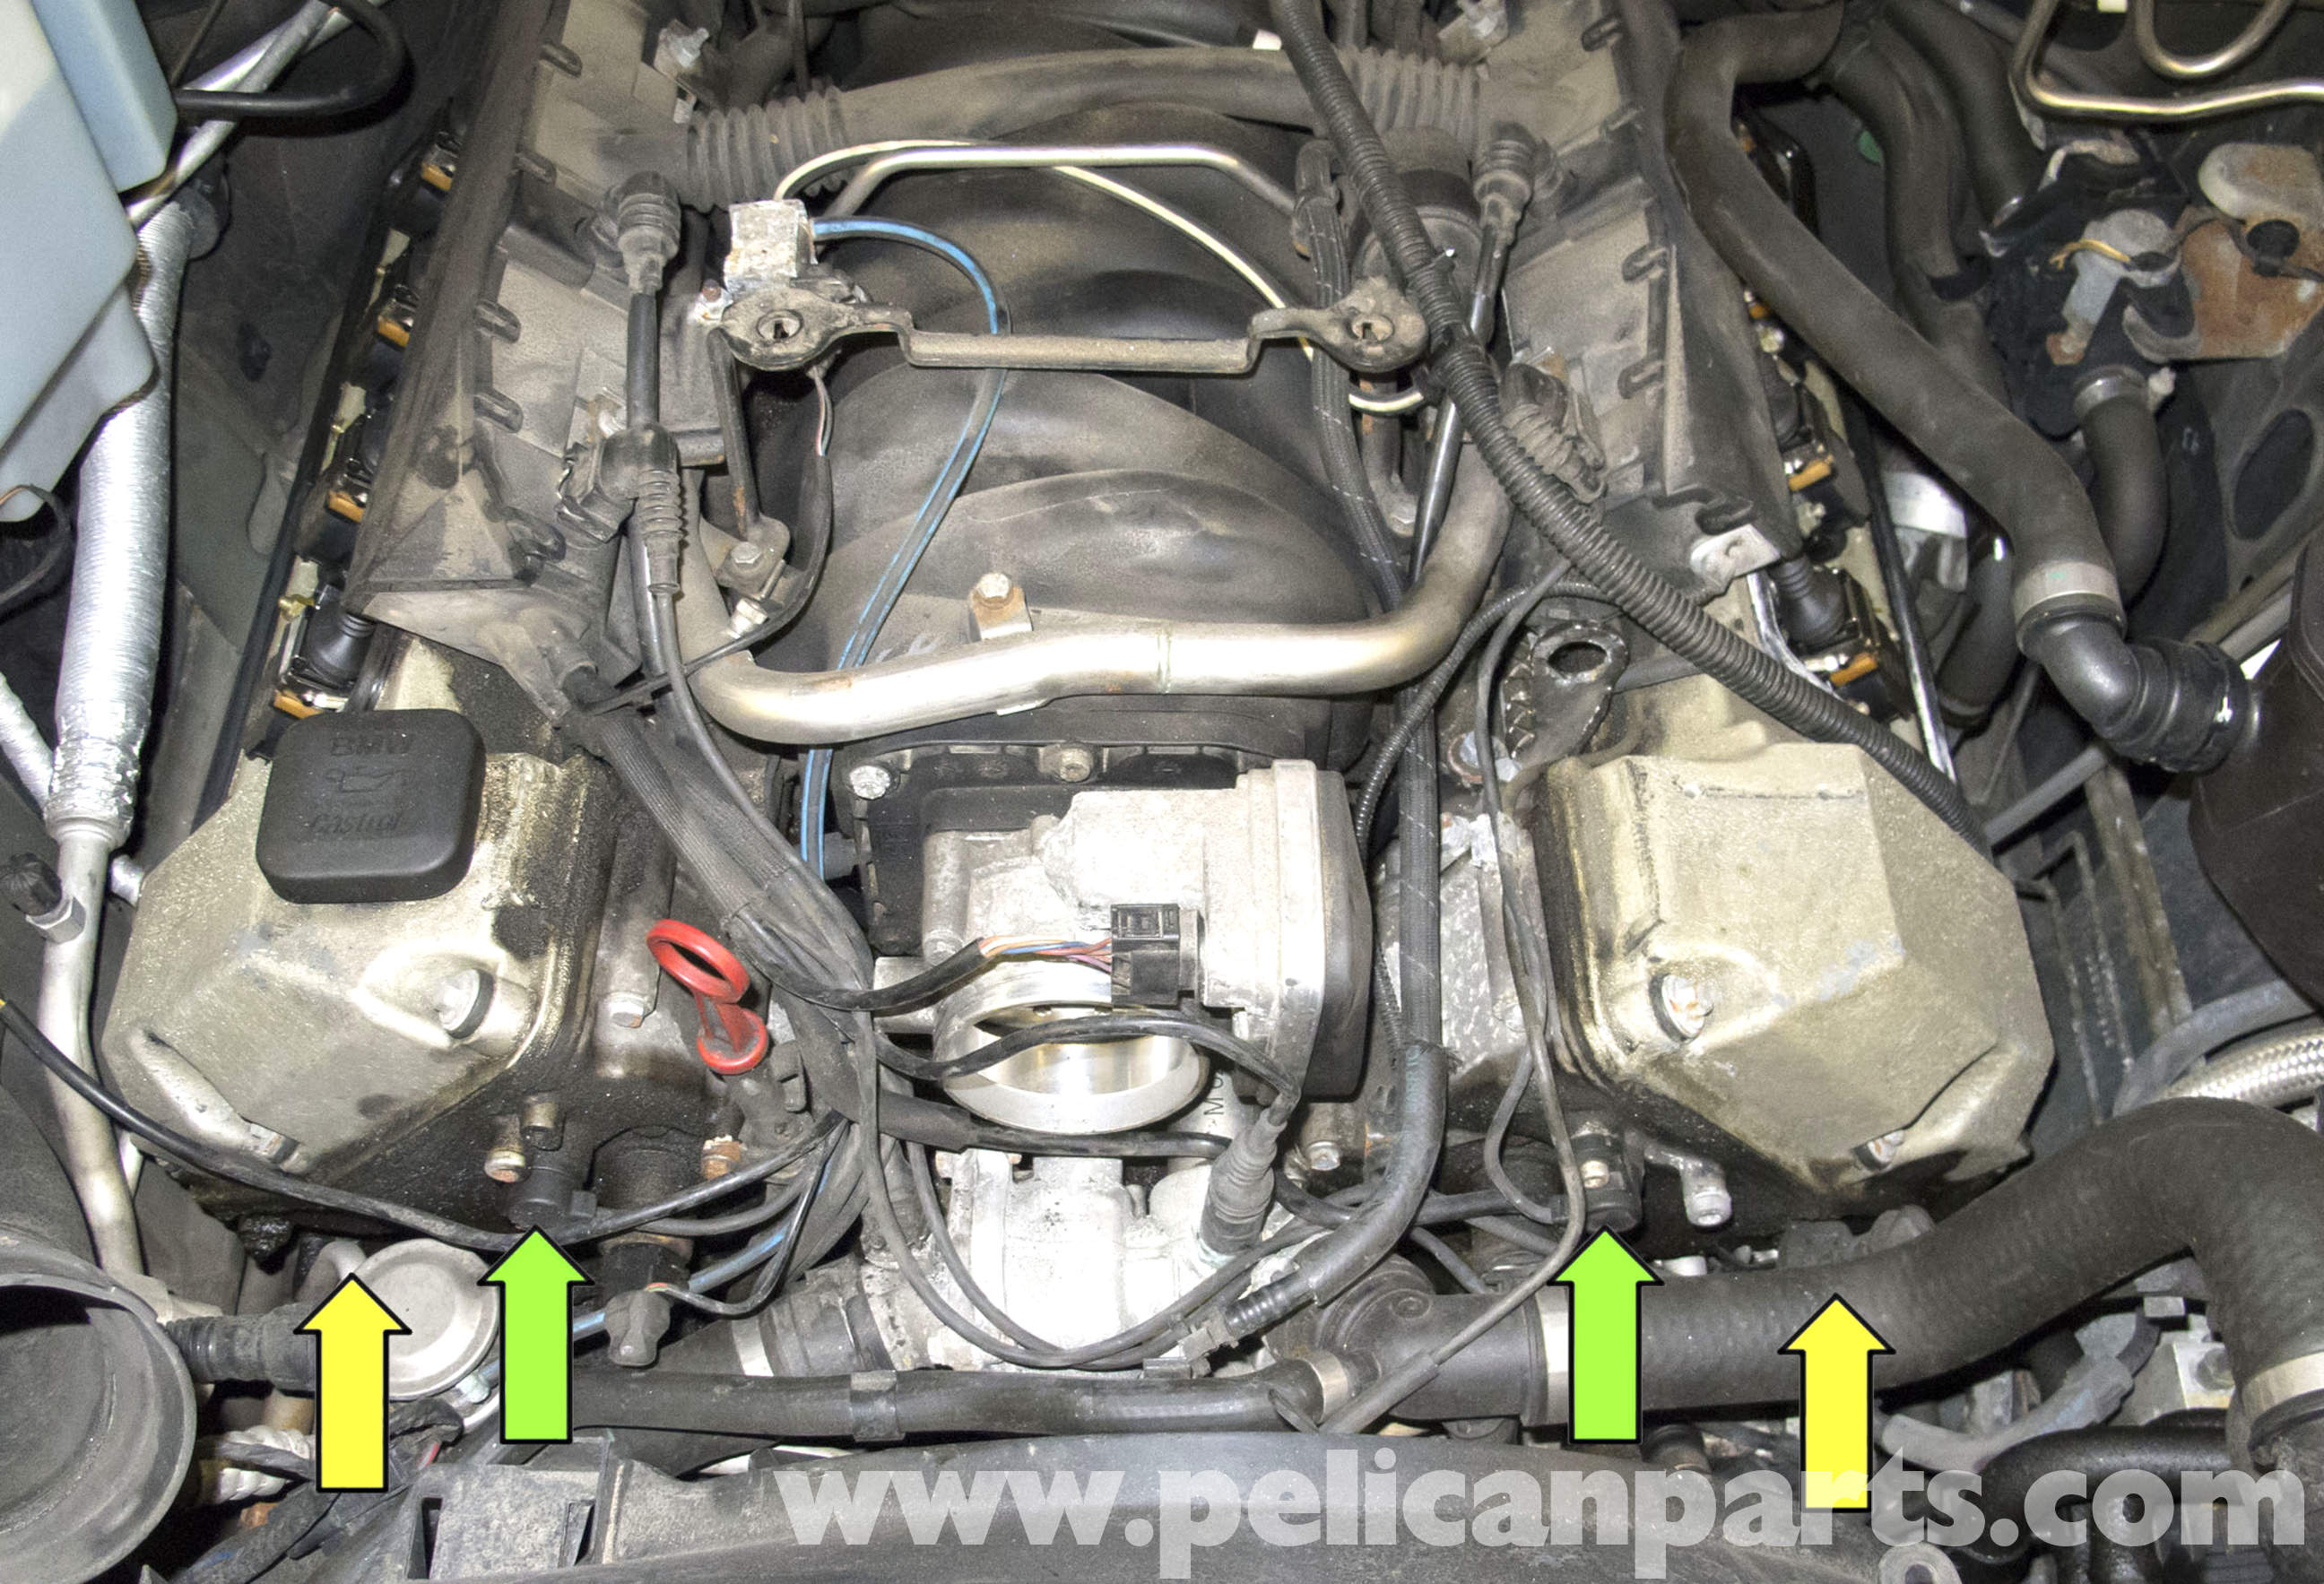 Check Add Power Steering Fluid as well Watch additionally 32 WATER Flushing Your Coolant additionally Watch besides 21 WATER Heater Valve Testing and Replacement. on 2004 bmw x3 coolant system